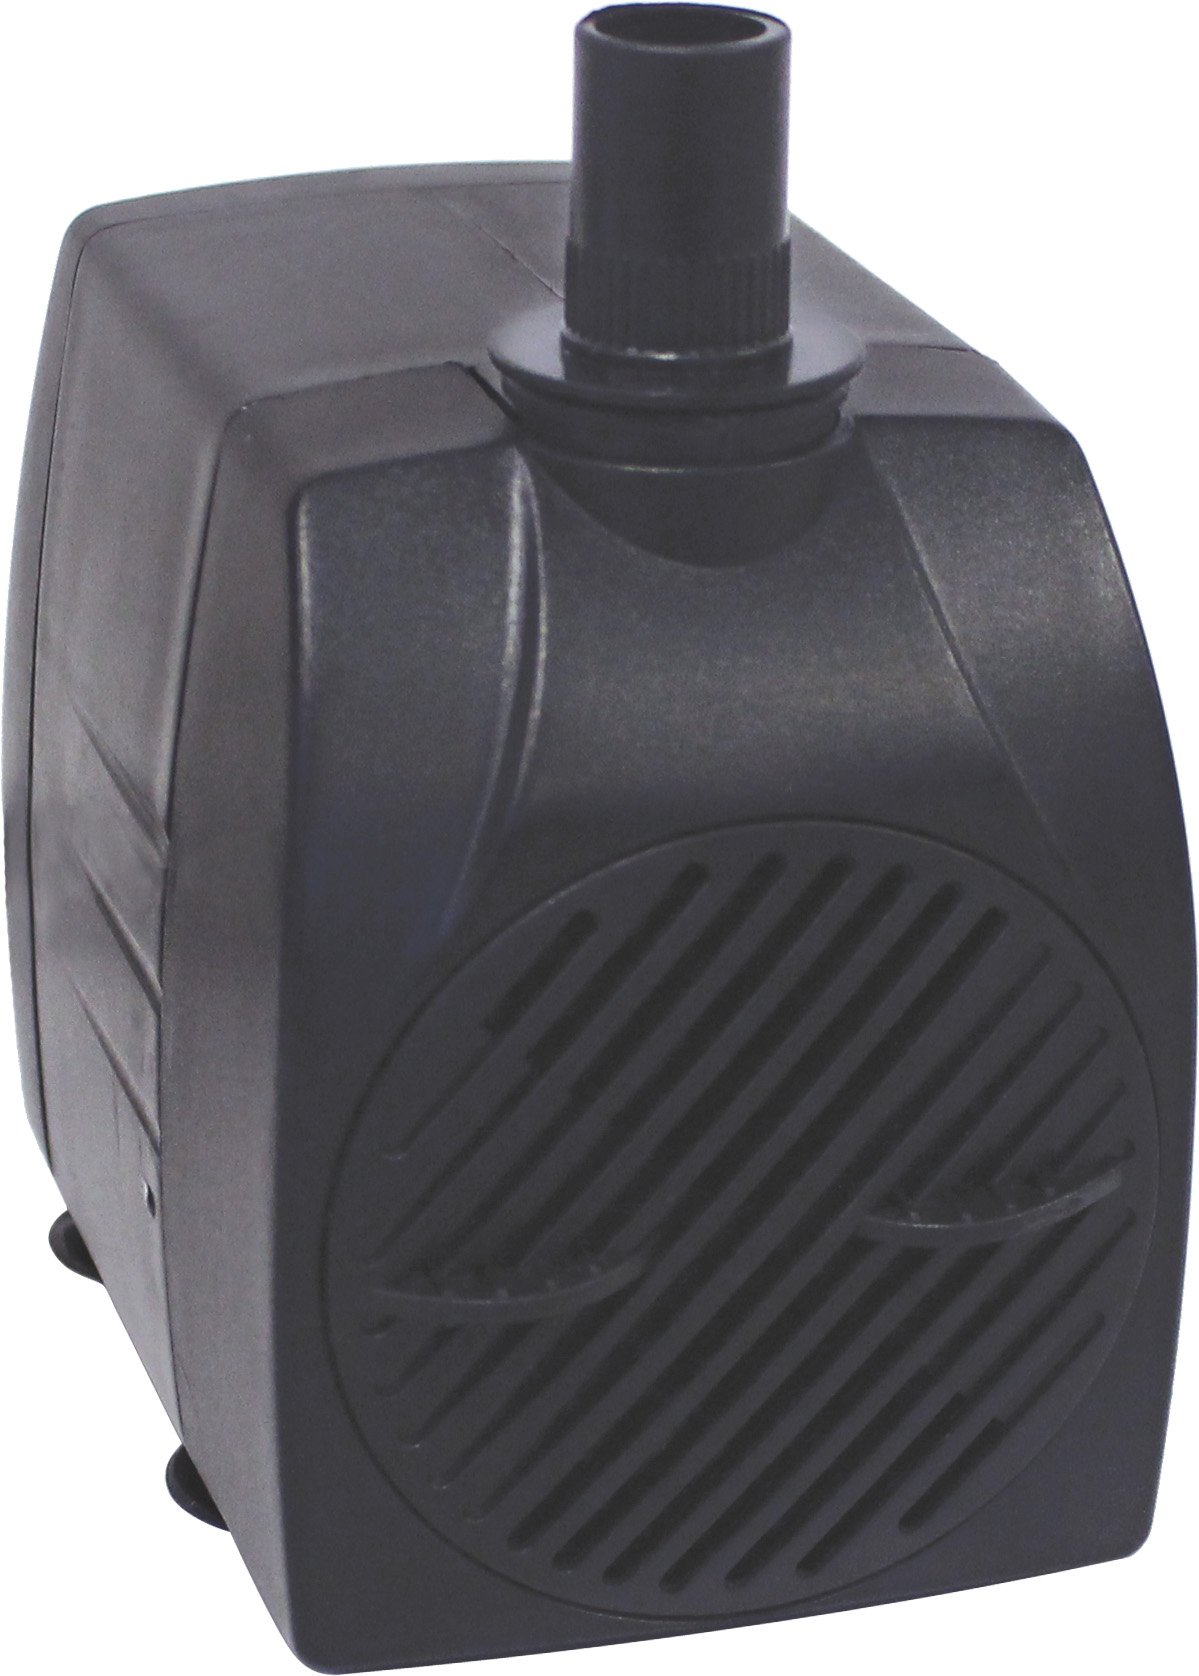 EasyPro Products MP575 Tranquil Decor Mag Drive Pump, 575 GPH